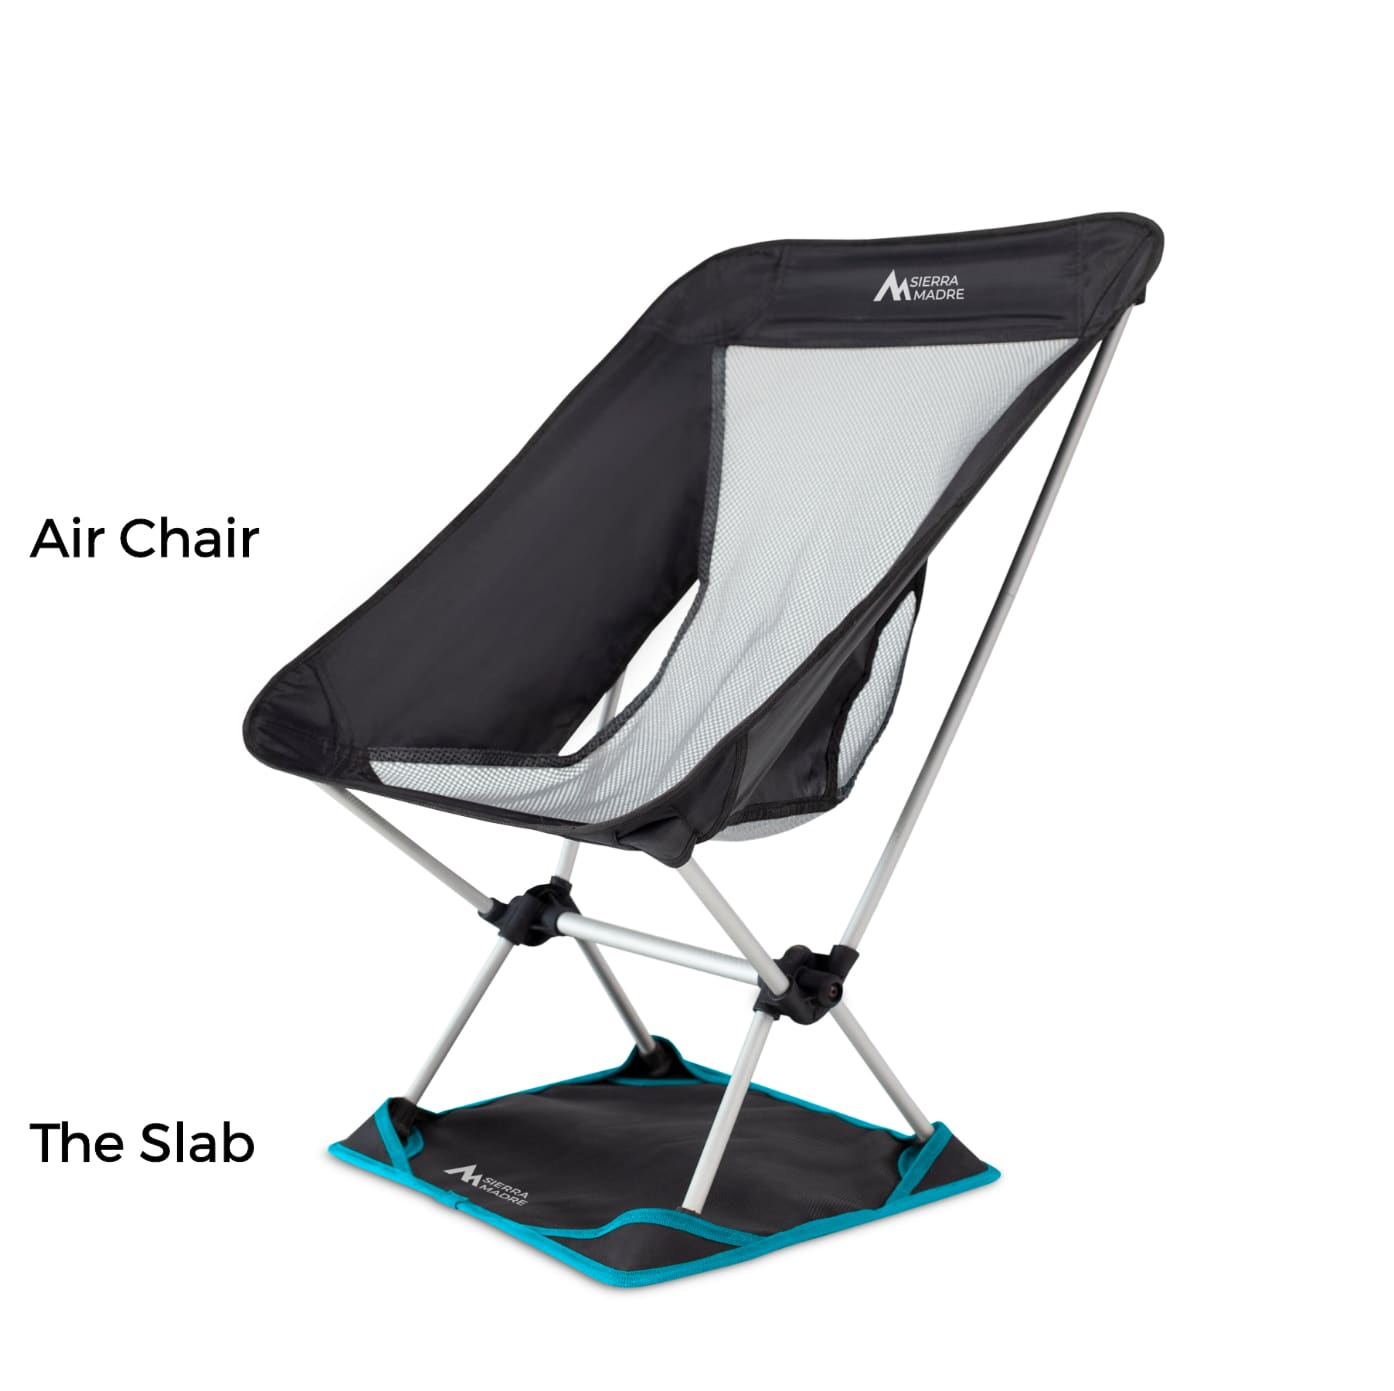 Air Chair + the Slab camp furniture for the pros